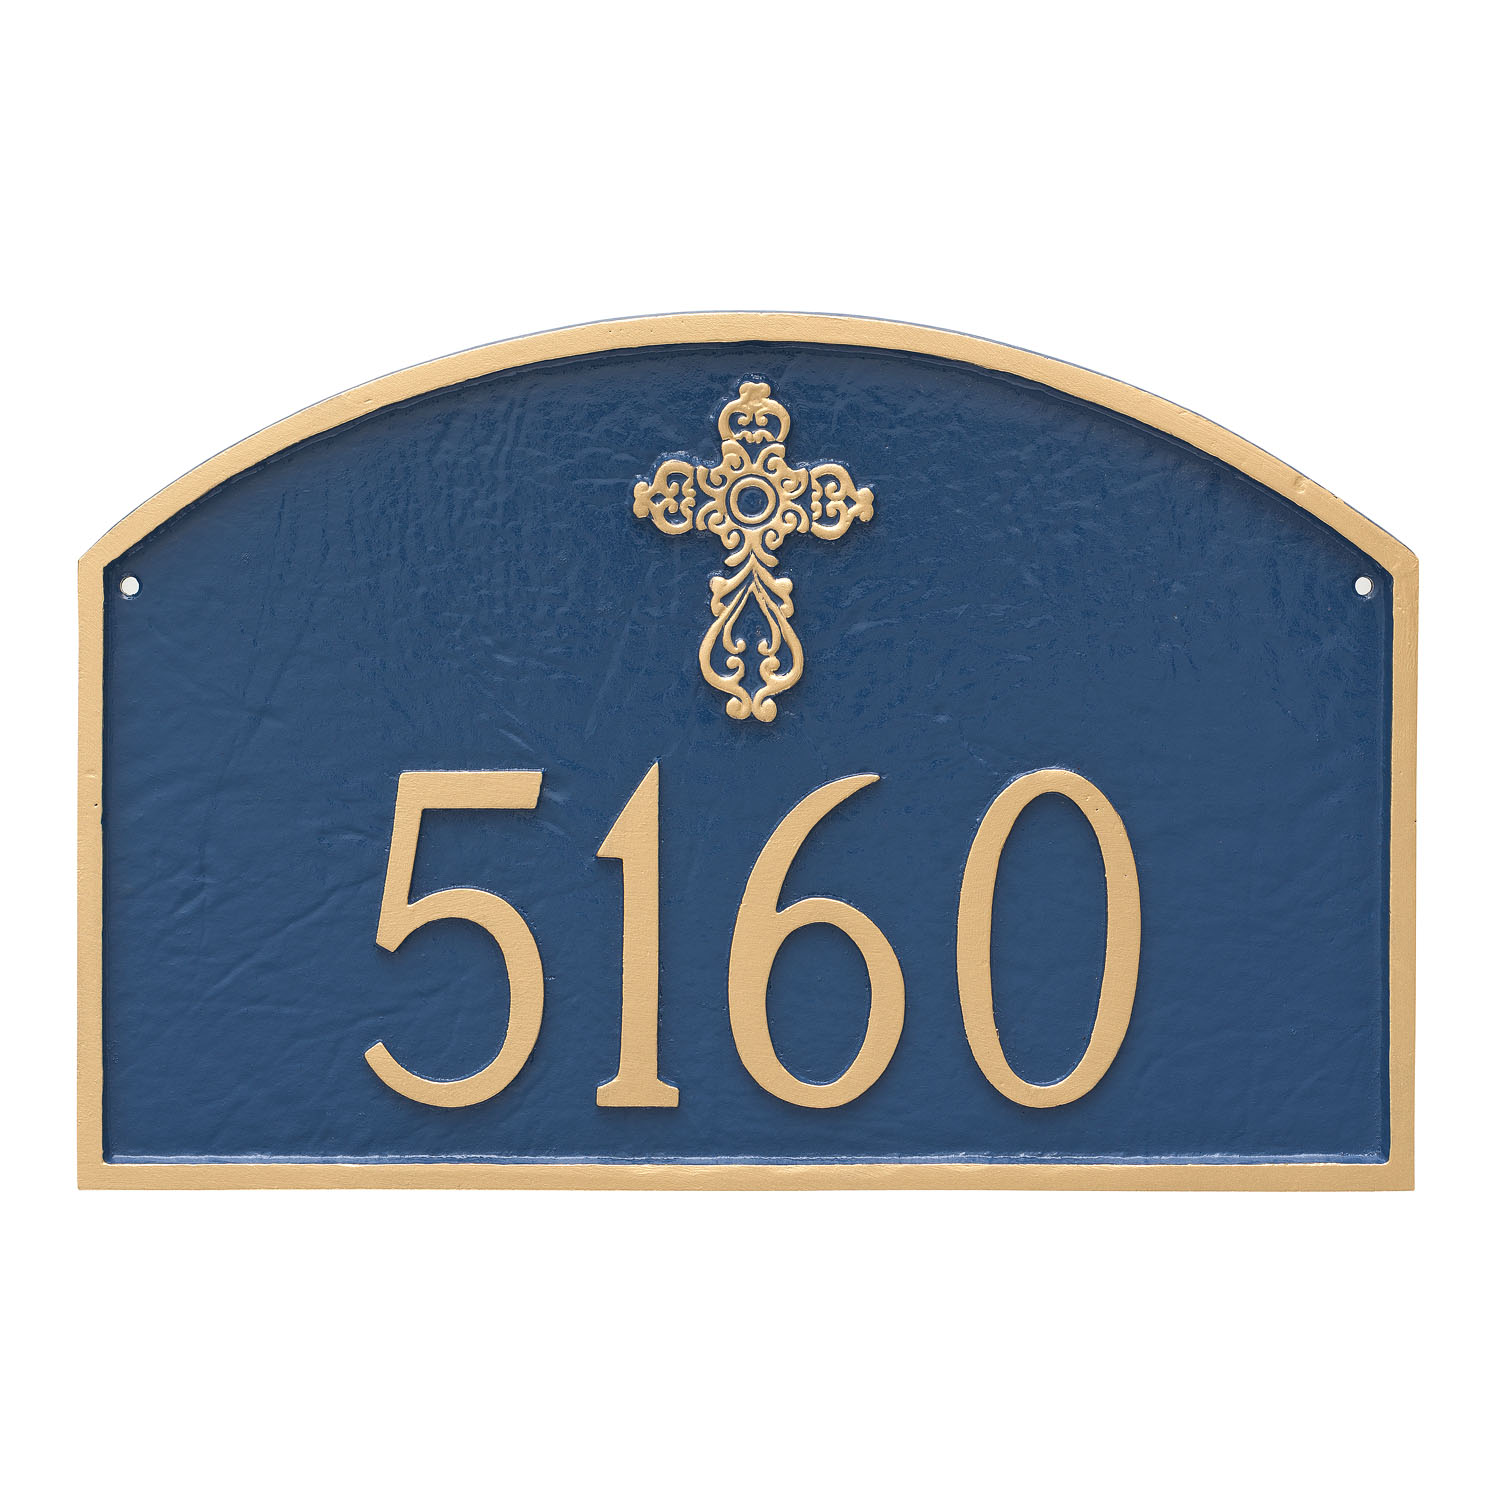 Ornate Cross Prestige Arch Address Plaque